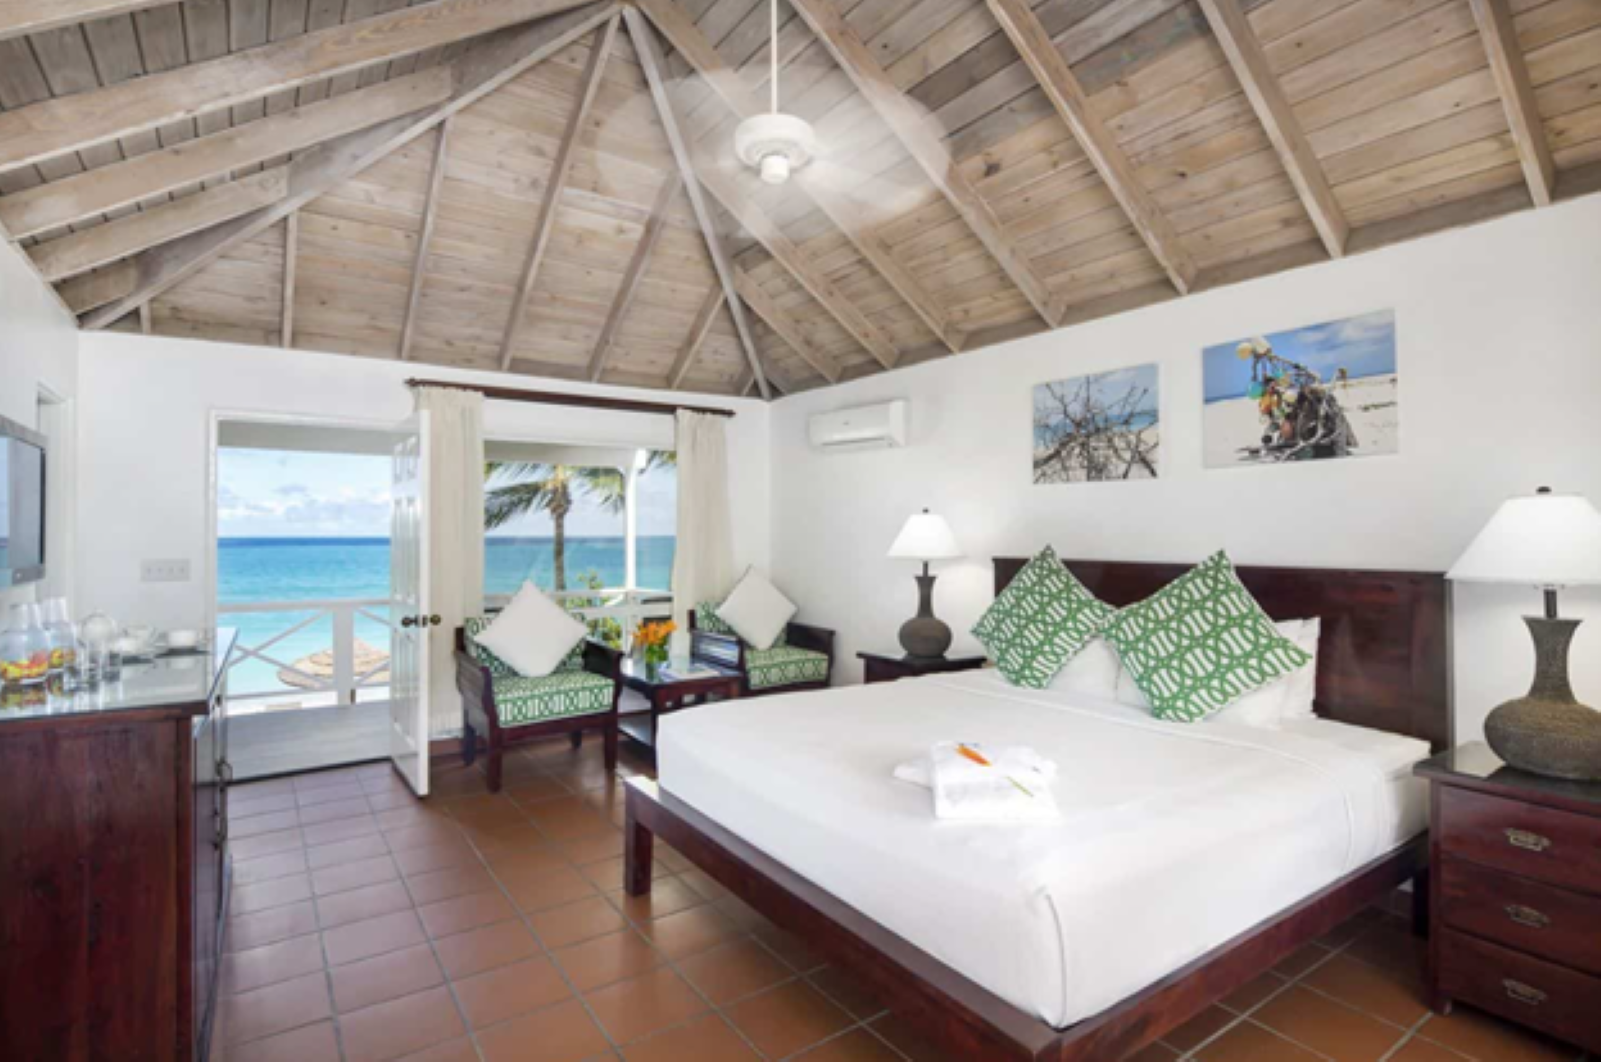 Cabana room with sitting chairs under the large window, king size bed, and brown tiled floor with an open door leading to the terrace